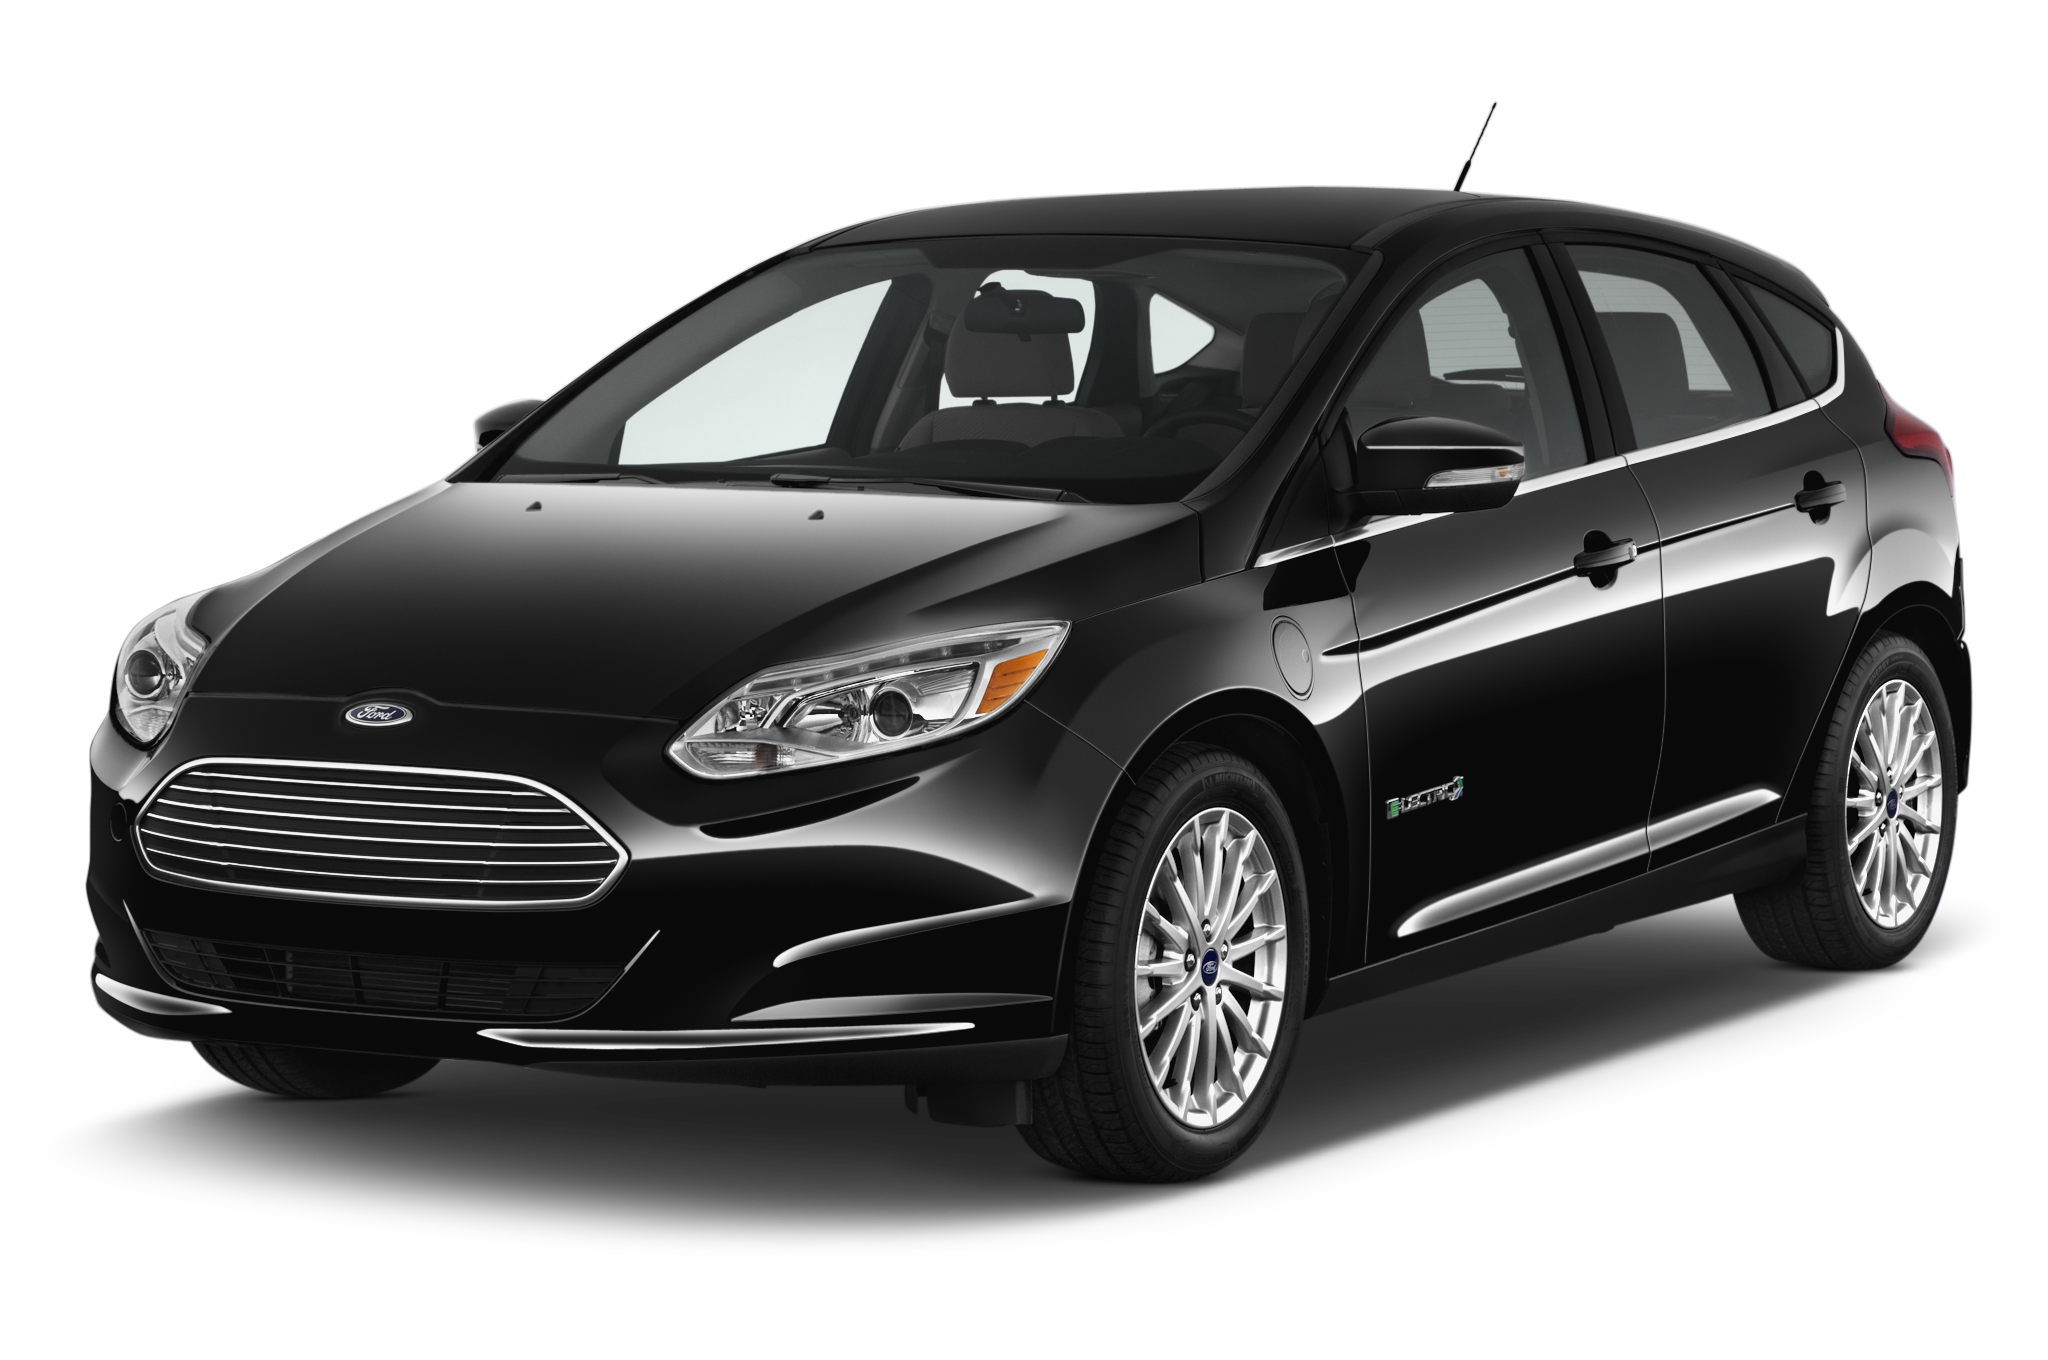 2016 ford focus png. Electric reviews and